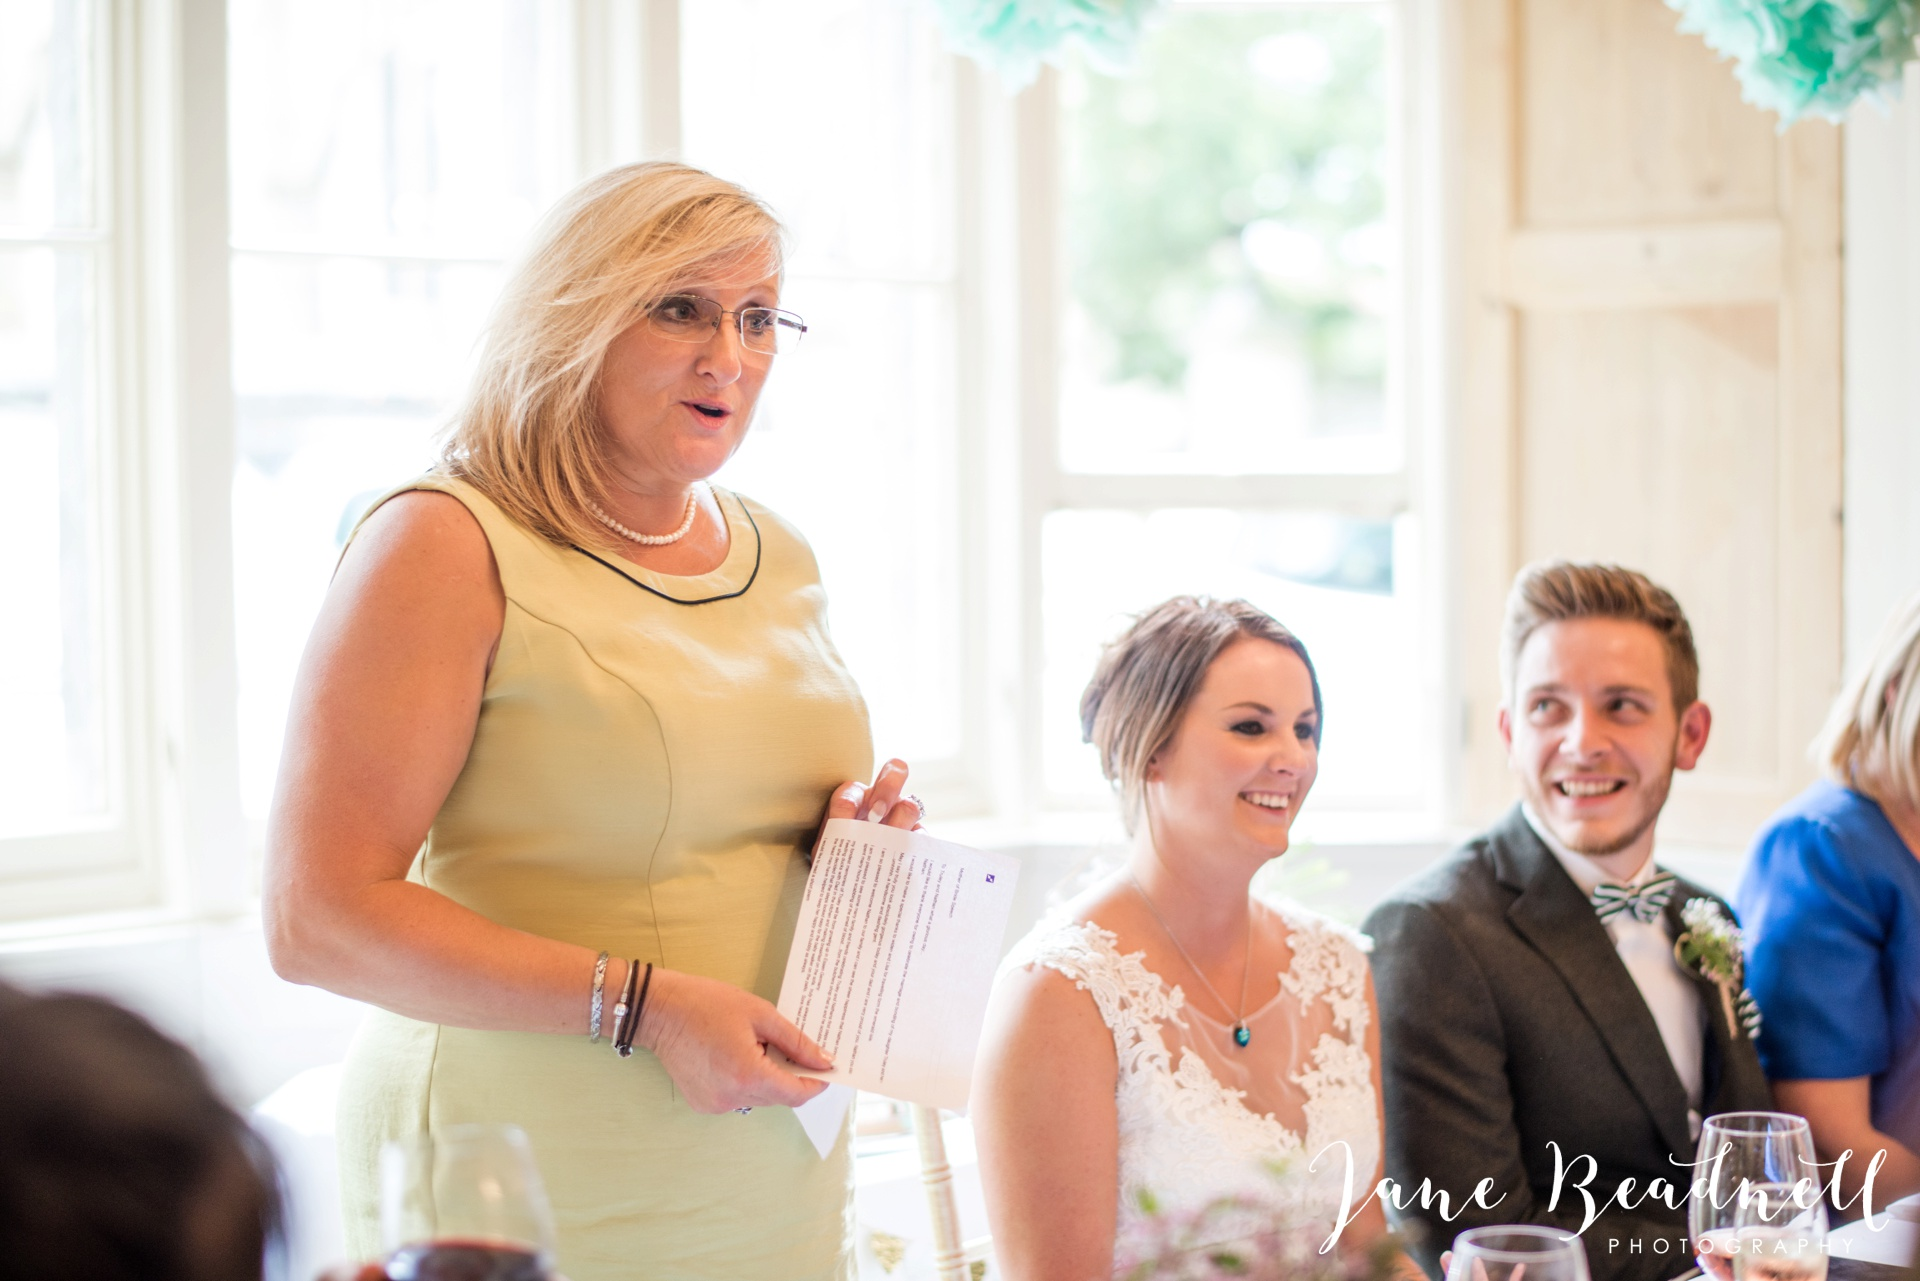 Jane Beadnell fine art wedding photographer The Old Deanery Ripon_0059